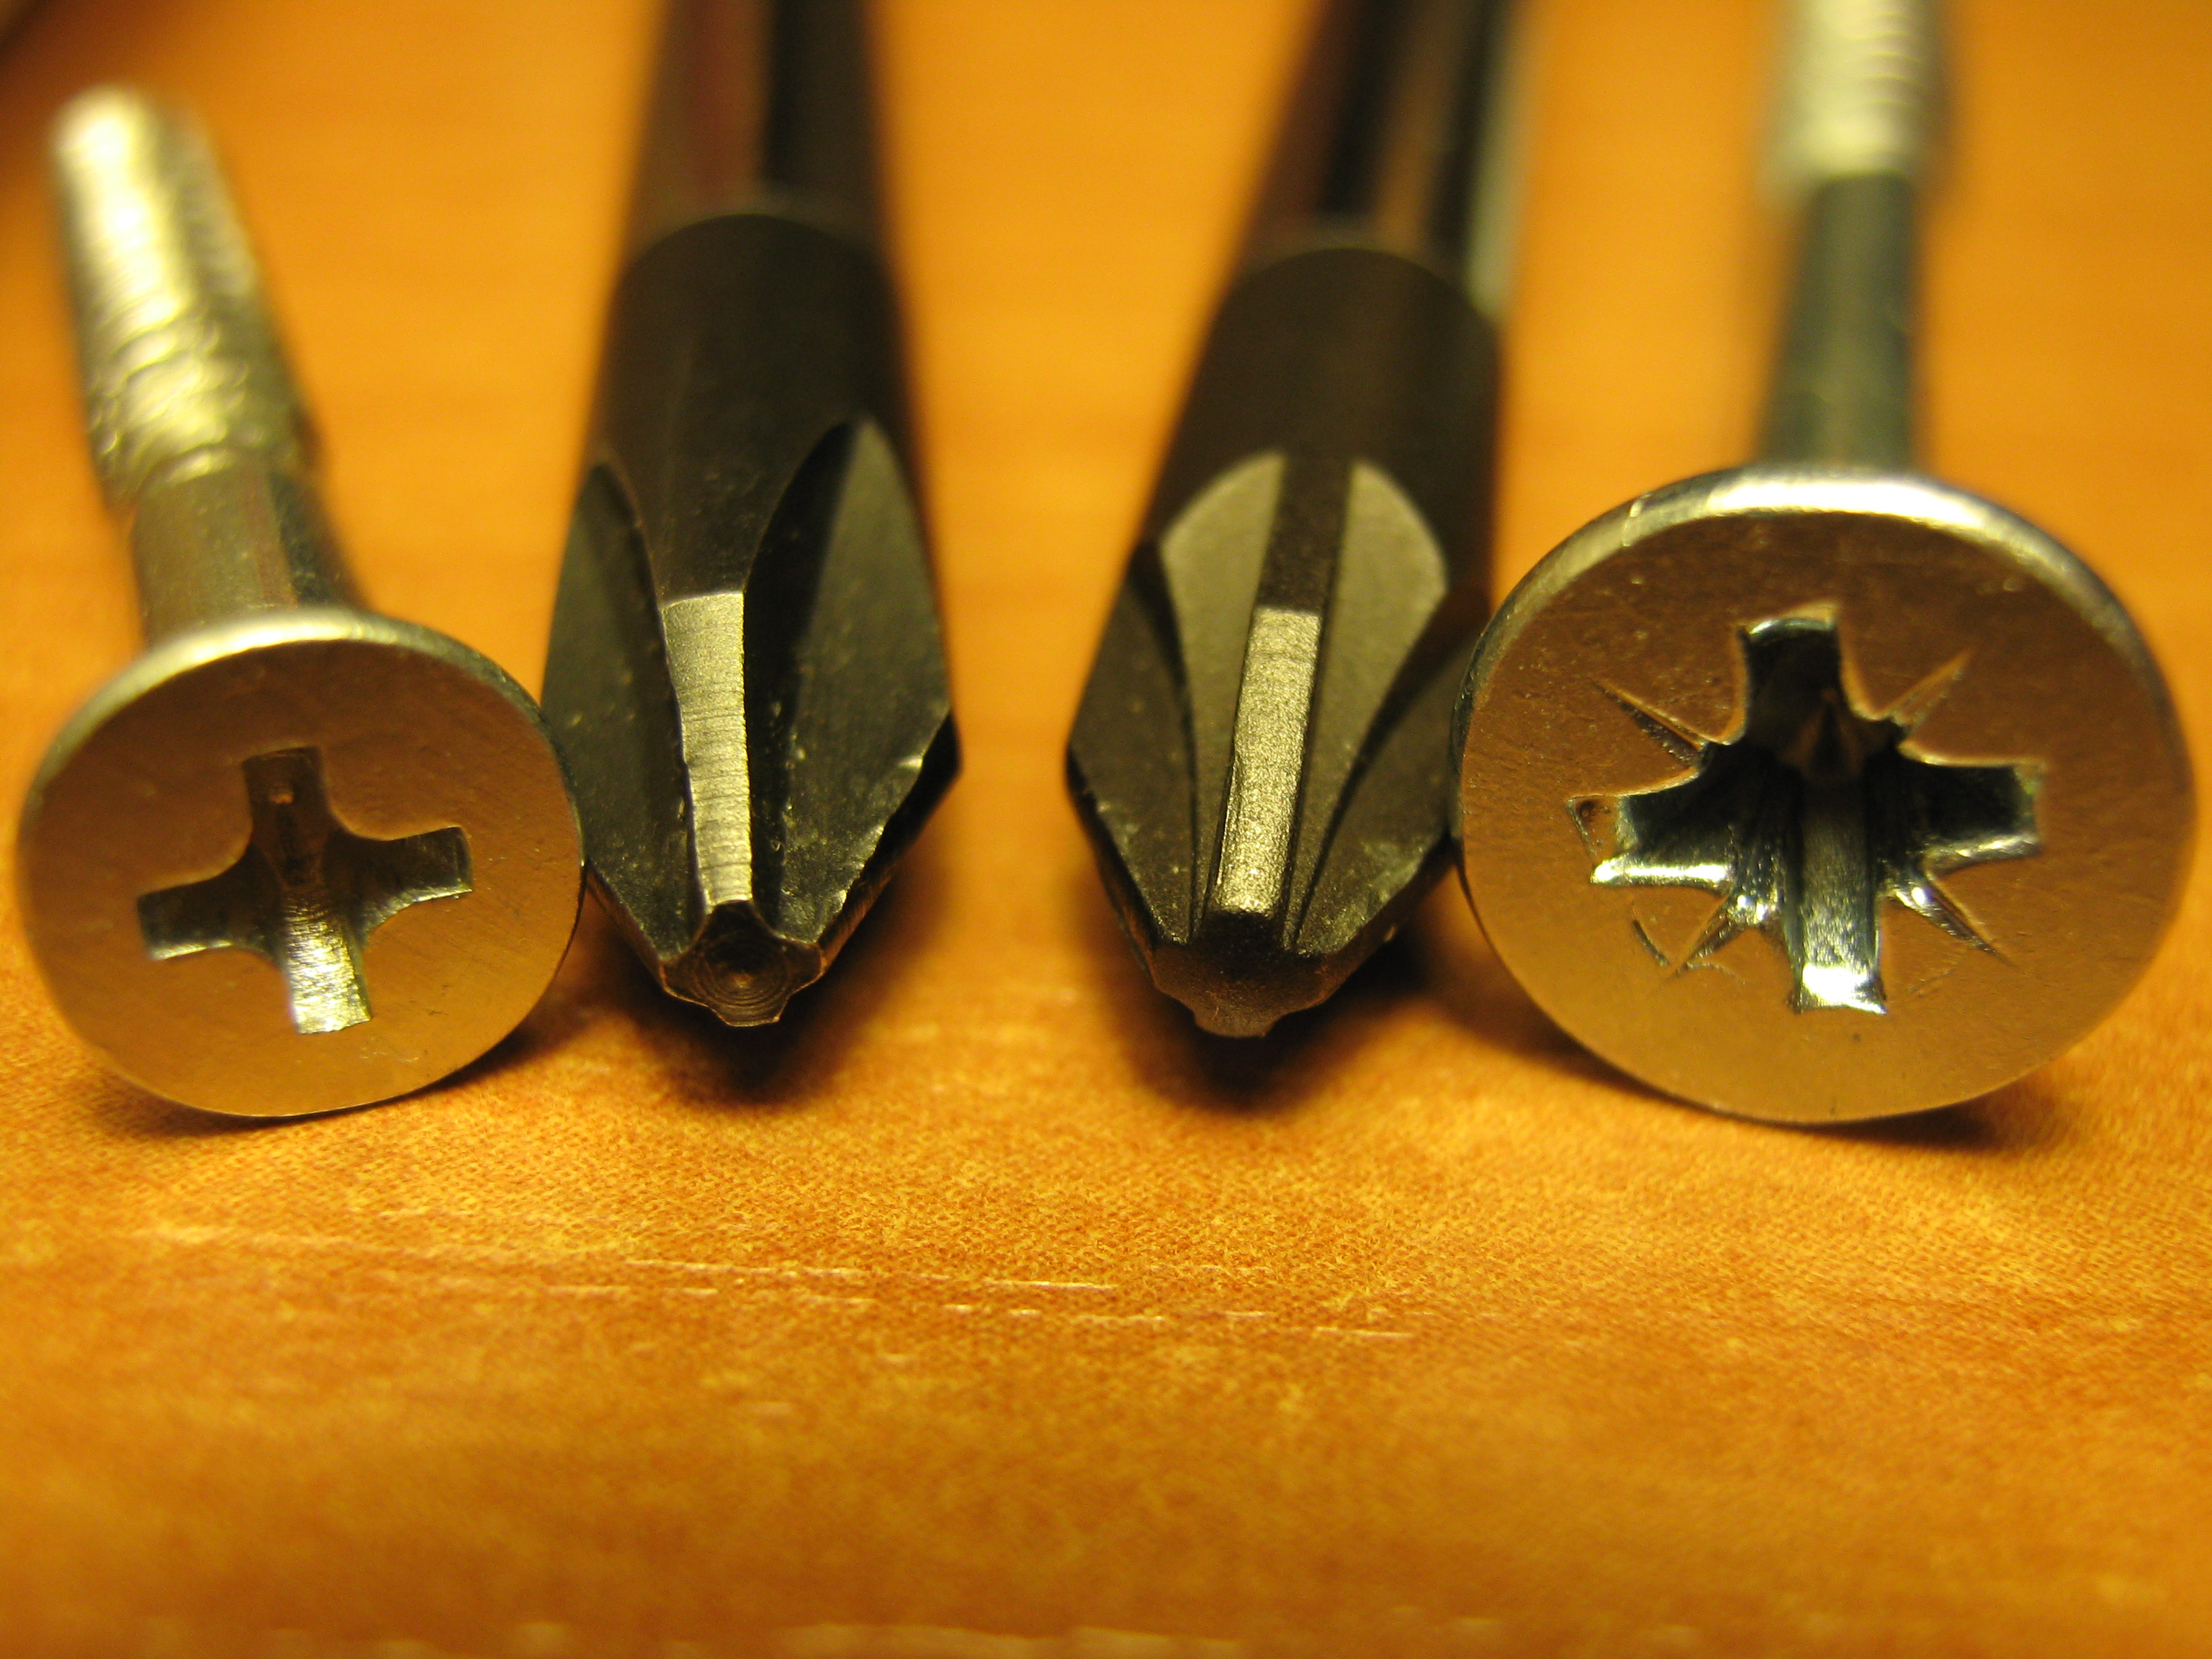 http://upload.wikimedia.org/wikipedia/commons/c/c9/PHILLIPS_and_POZIDRIV_screwdrivers_and_screw.JPG